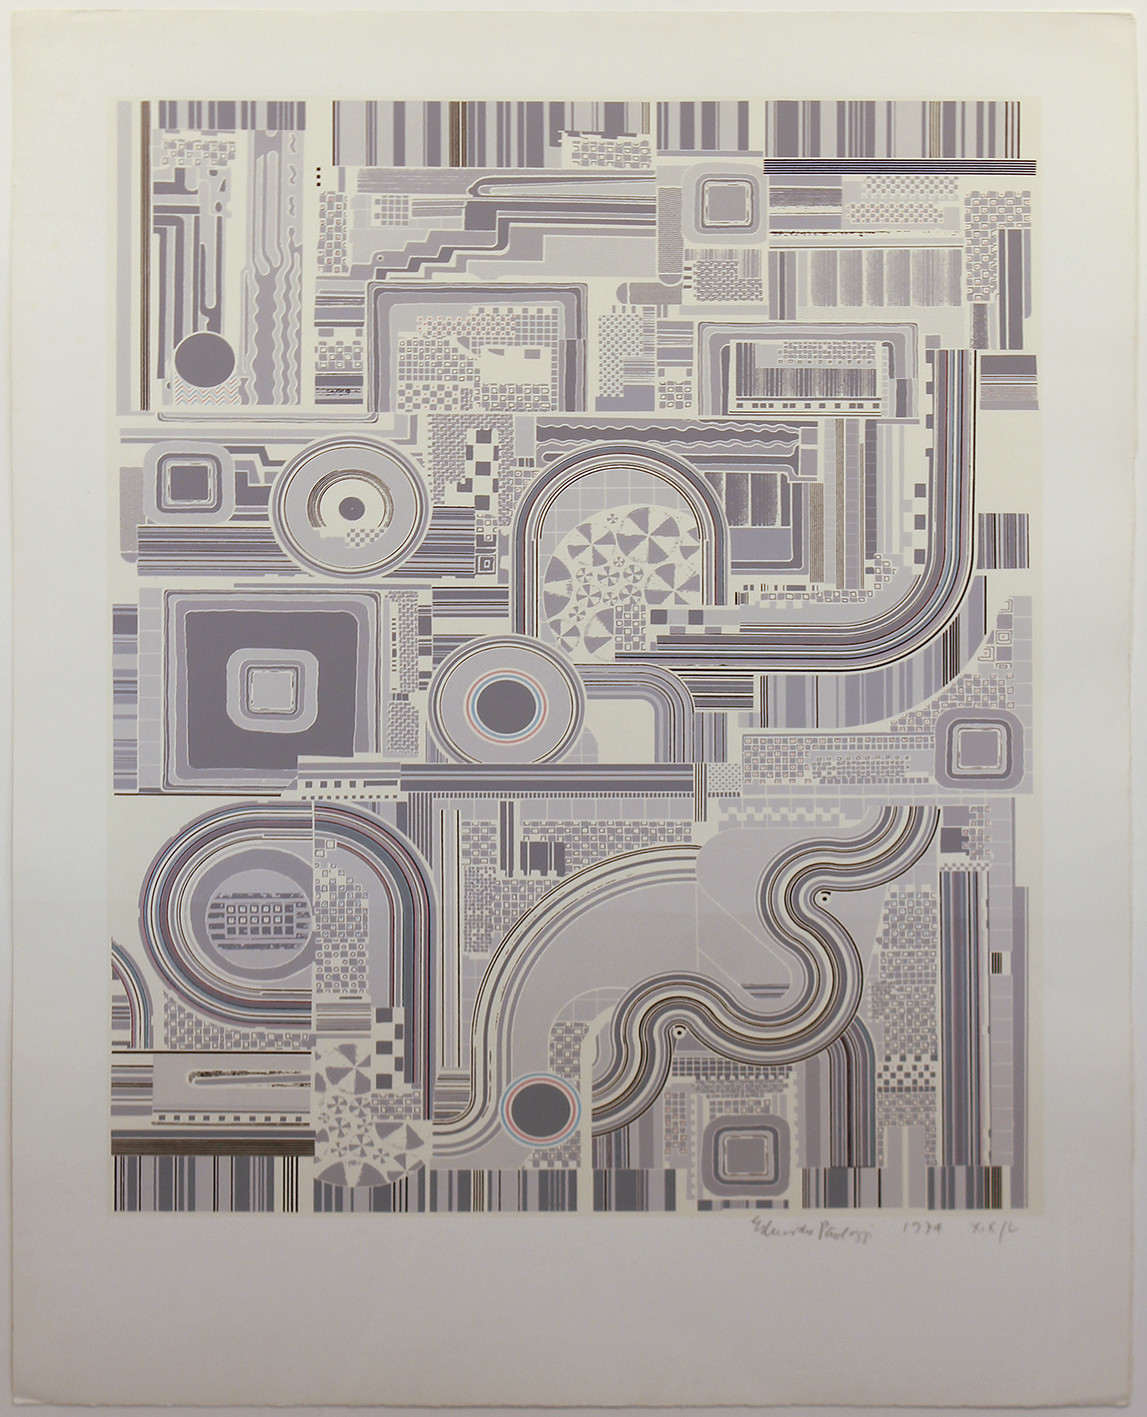 "<span class=""link fancybox-details-link""><a href=""/artists/180-eduardo-paolozzi-cbe-ra/works/4880-eduardo-paolozzi-cbe-ra-untitled-grey-1974/"">View Detail Page</a></span><div class=""artist""><strong>Eduardo Paolozzi CBE RA</strong></div> 1925-2005 <div class=""title""><em>Untitled Grey</em>, 1974</div> <div class=""signed_and_dated"">signed, dated and editioned in pencil</div> <div class=""medium"">screenprint printed in colours, on Firenze wove, signed, dated and numbered in pencil</div> <div class=""dimensions"">Image size: 64 x 49 cm<br /> 25 1/4 x 19 1/4 in</div> <div class=""edition_details"">Proof number XIX / L aside from the edition of 100</div><div class=""copyright_line"">© The Estate of Eduardo Paolozzi</div>"